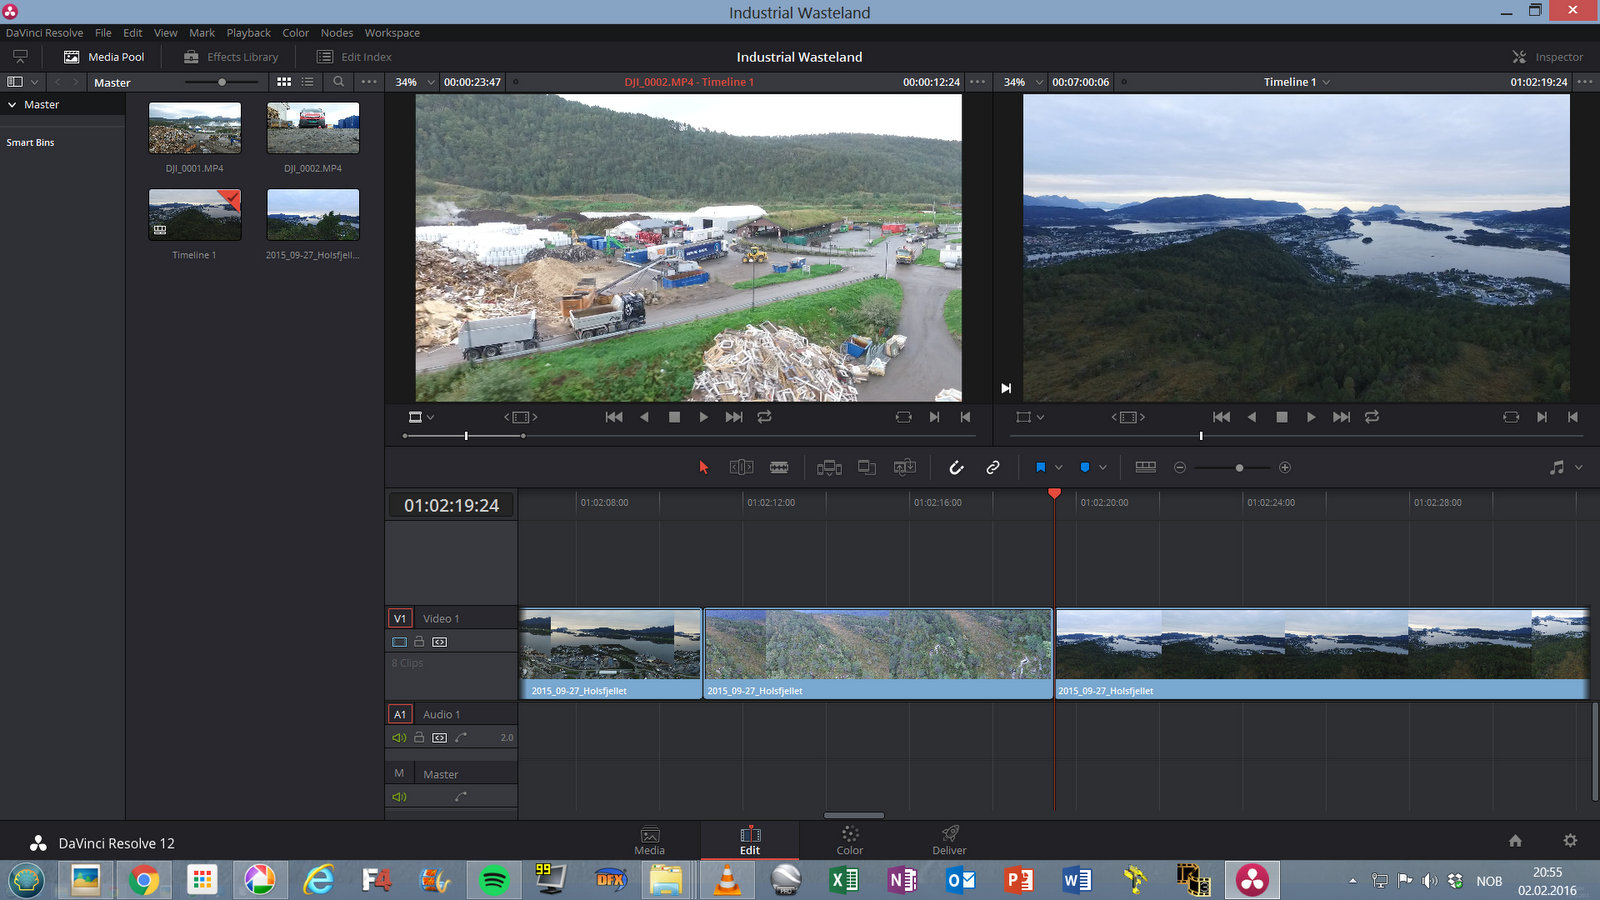 DaVinchi_Resolve_Edit_02.02.2016.jpg